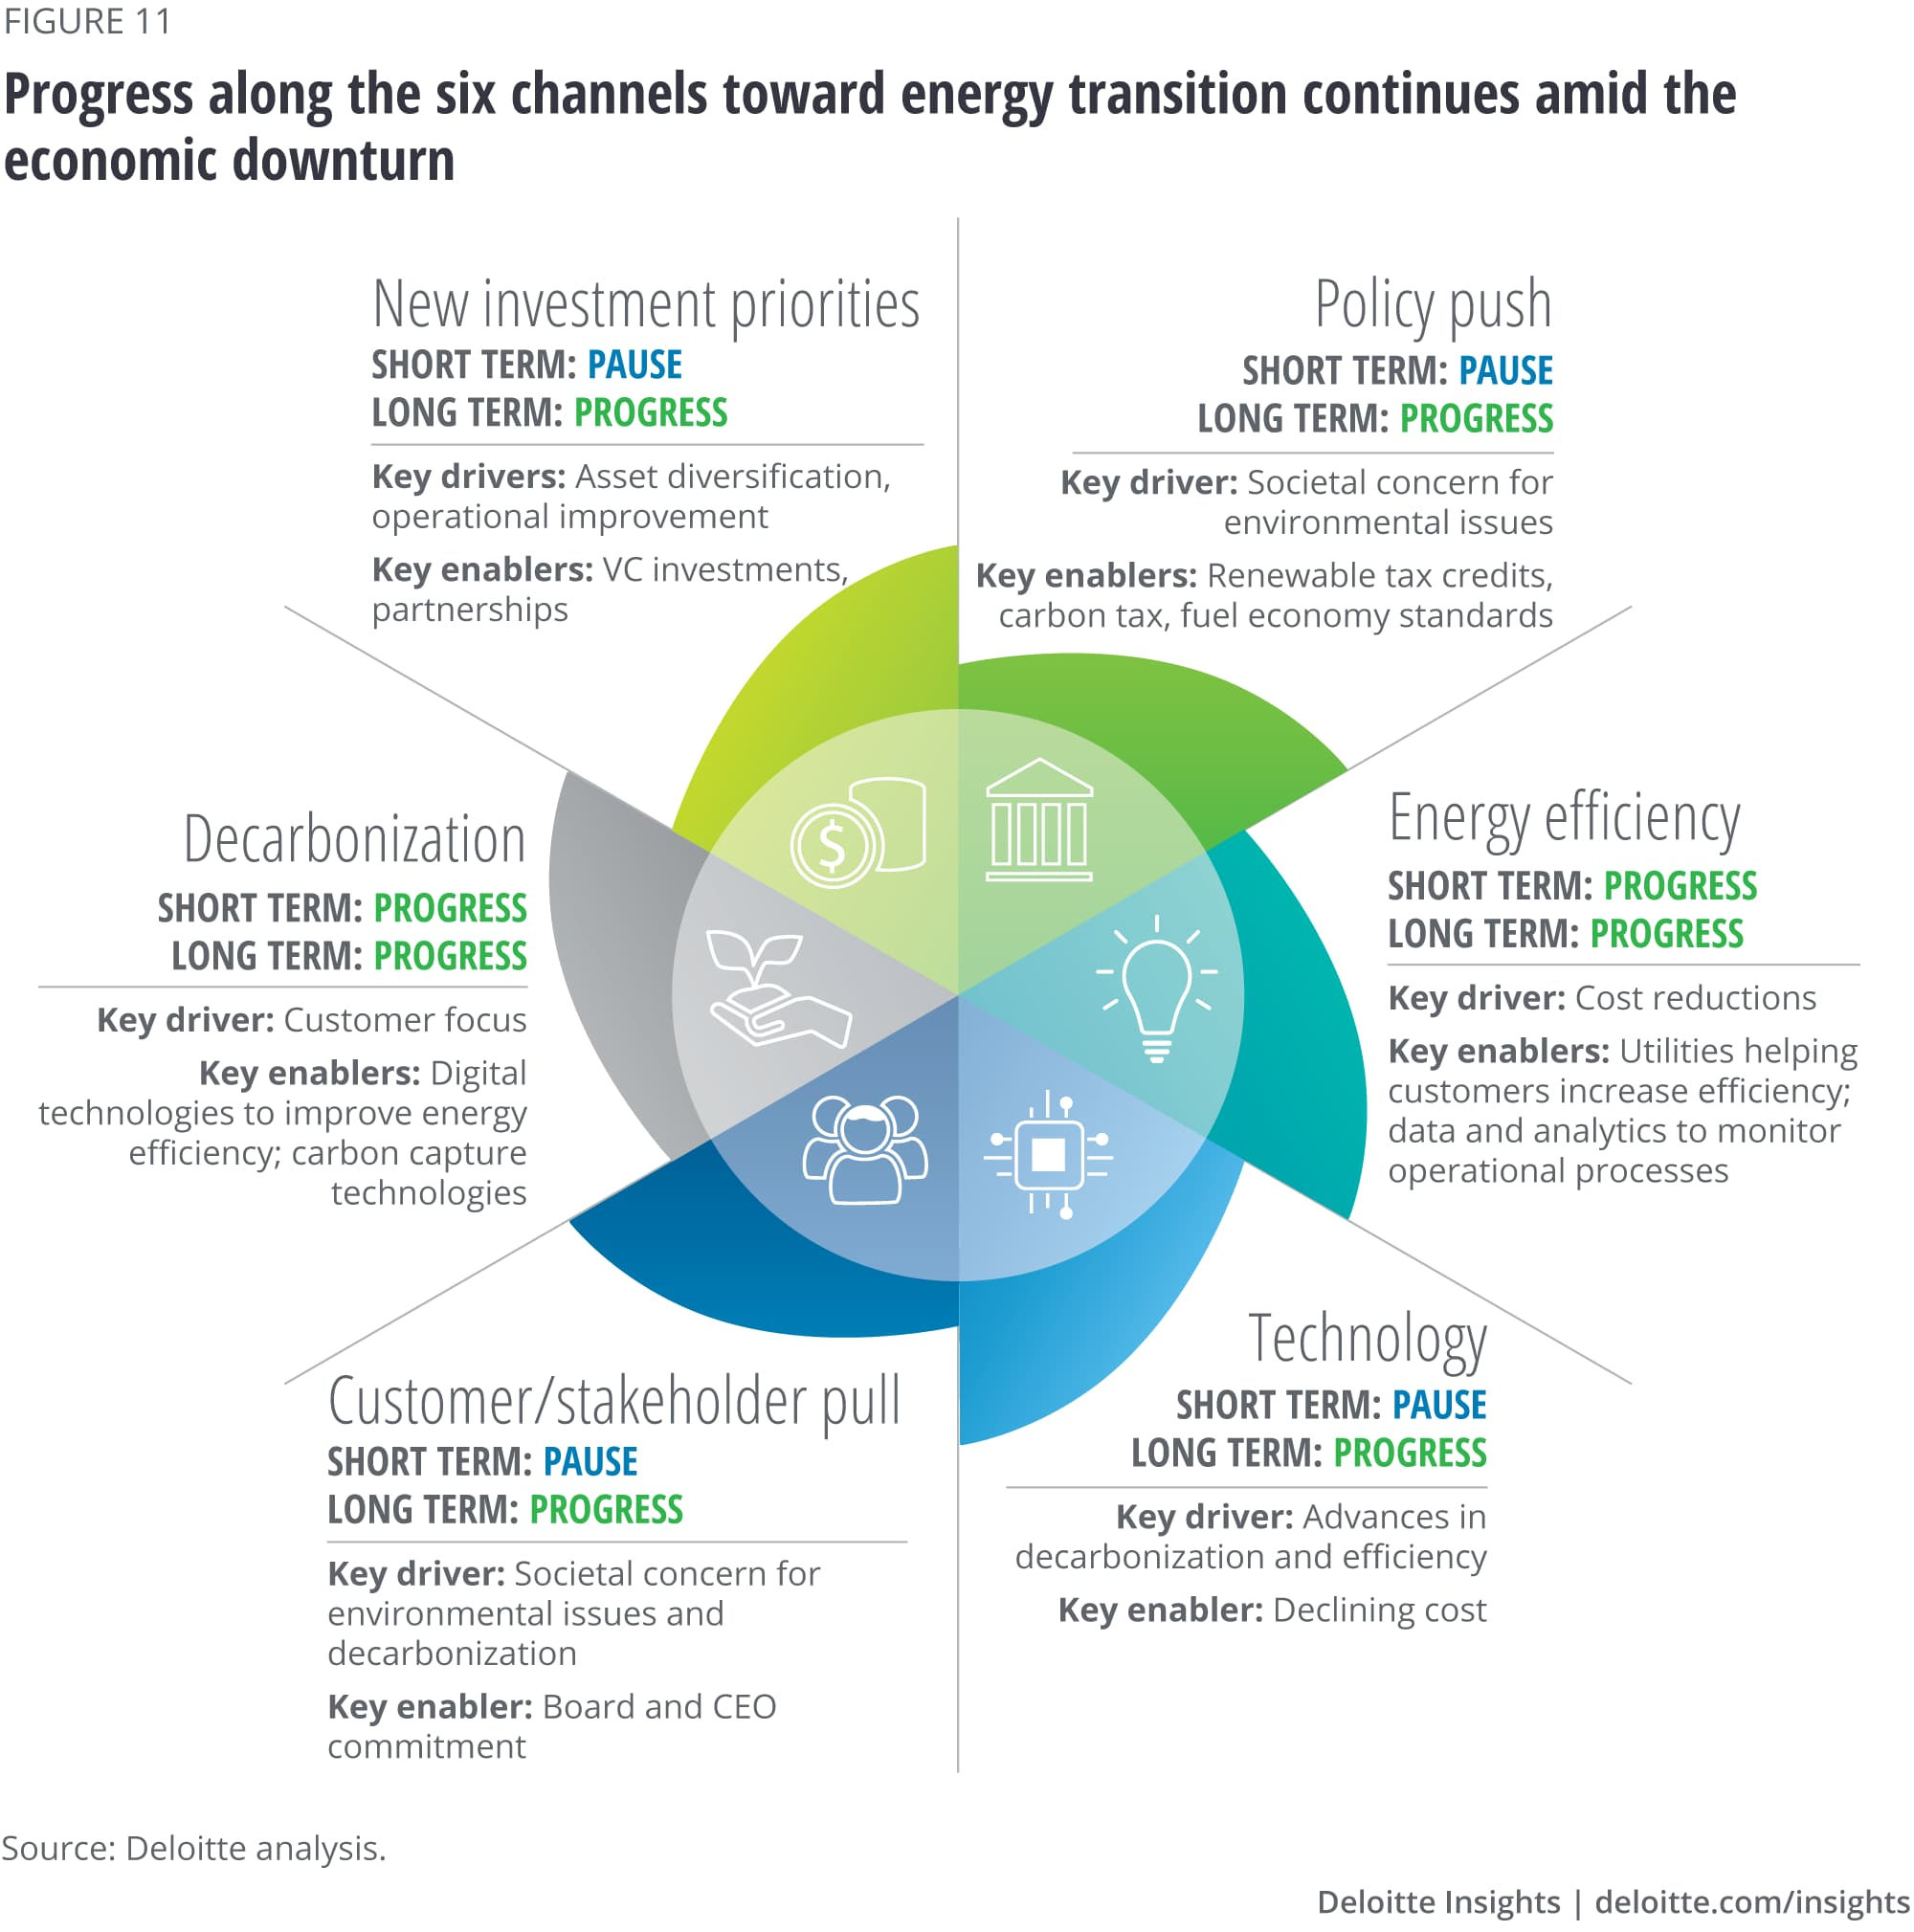 Progress along the six channels toward energy transition continues amid the economic downturn